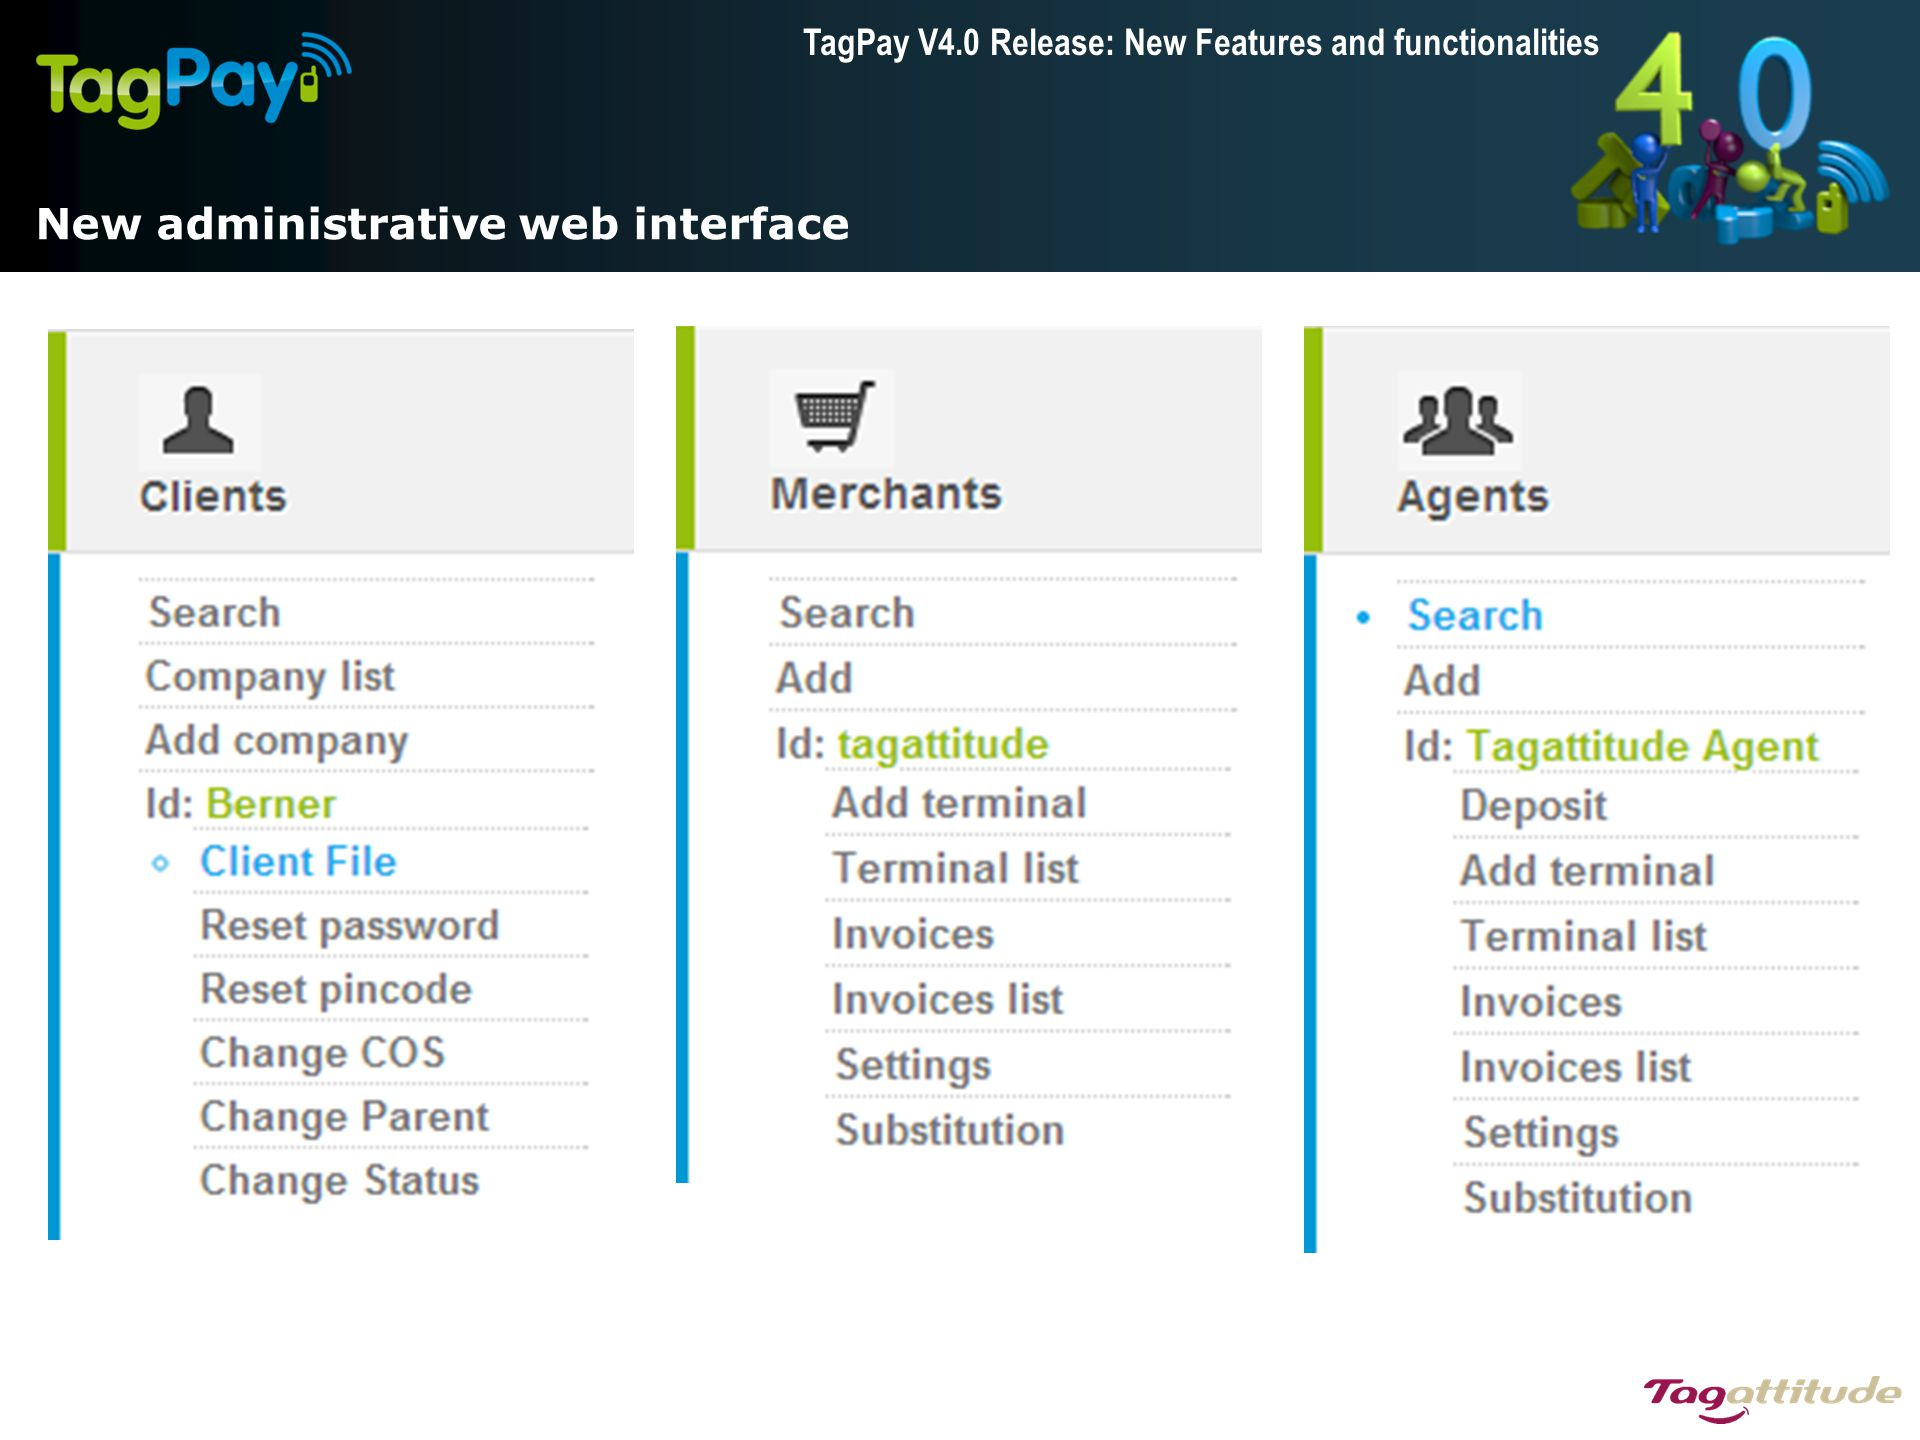 TagPay V4.0 Release: New Features and functionalities New administrative web interface